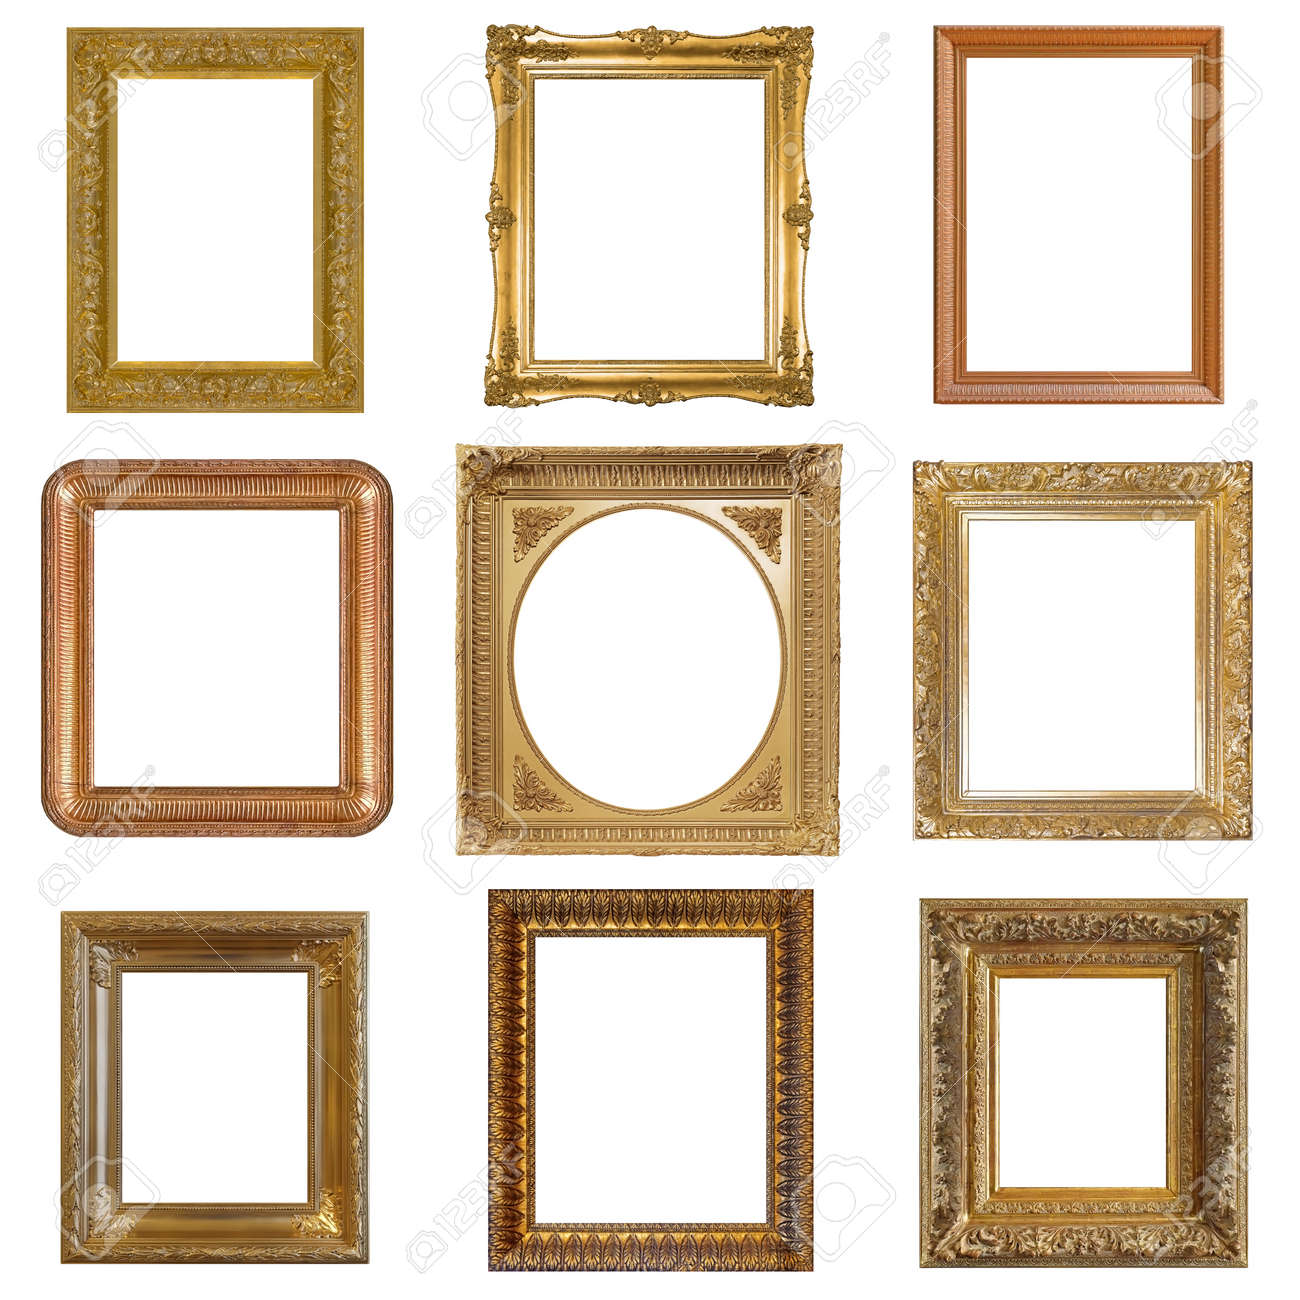 Set of golden frames for paintings, mirrors or photo isolated on white background - 155590009